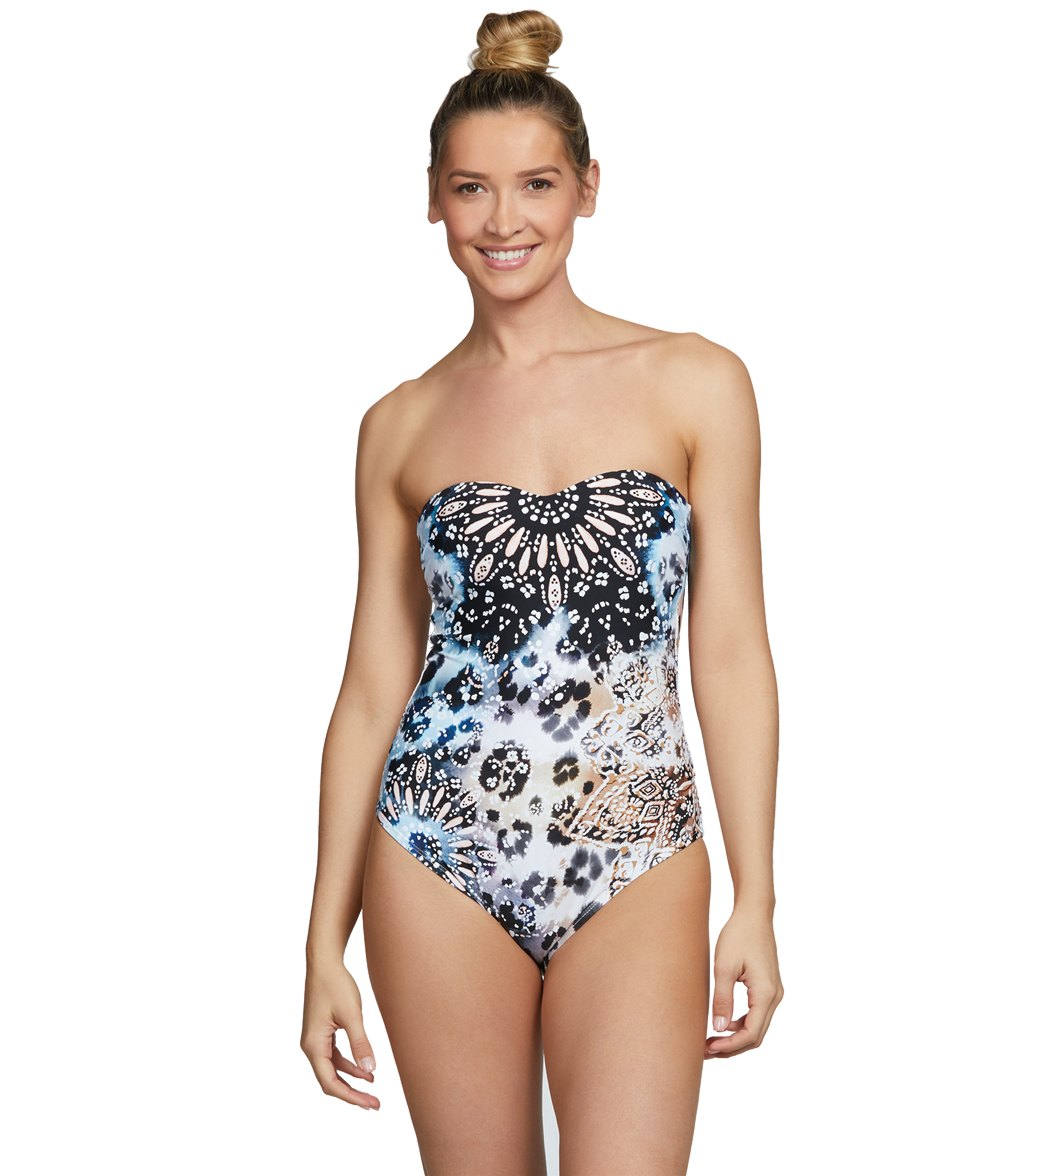 62bab5519ff86 Kenneth Cole Across The Atlantic Bandeau One Piece Swimsuit at  SwimOutlet.com - Free Shipping